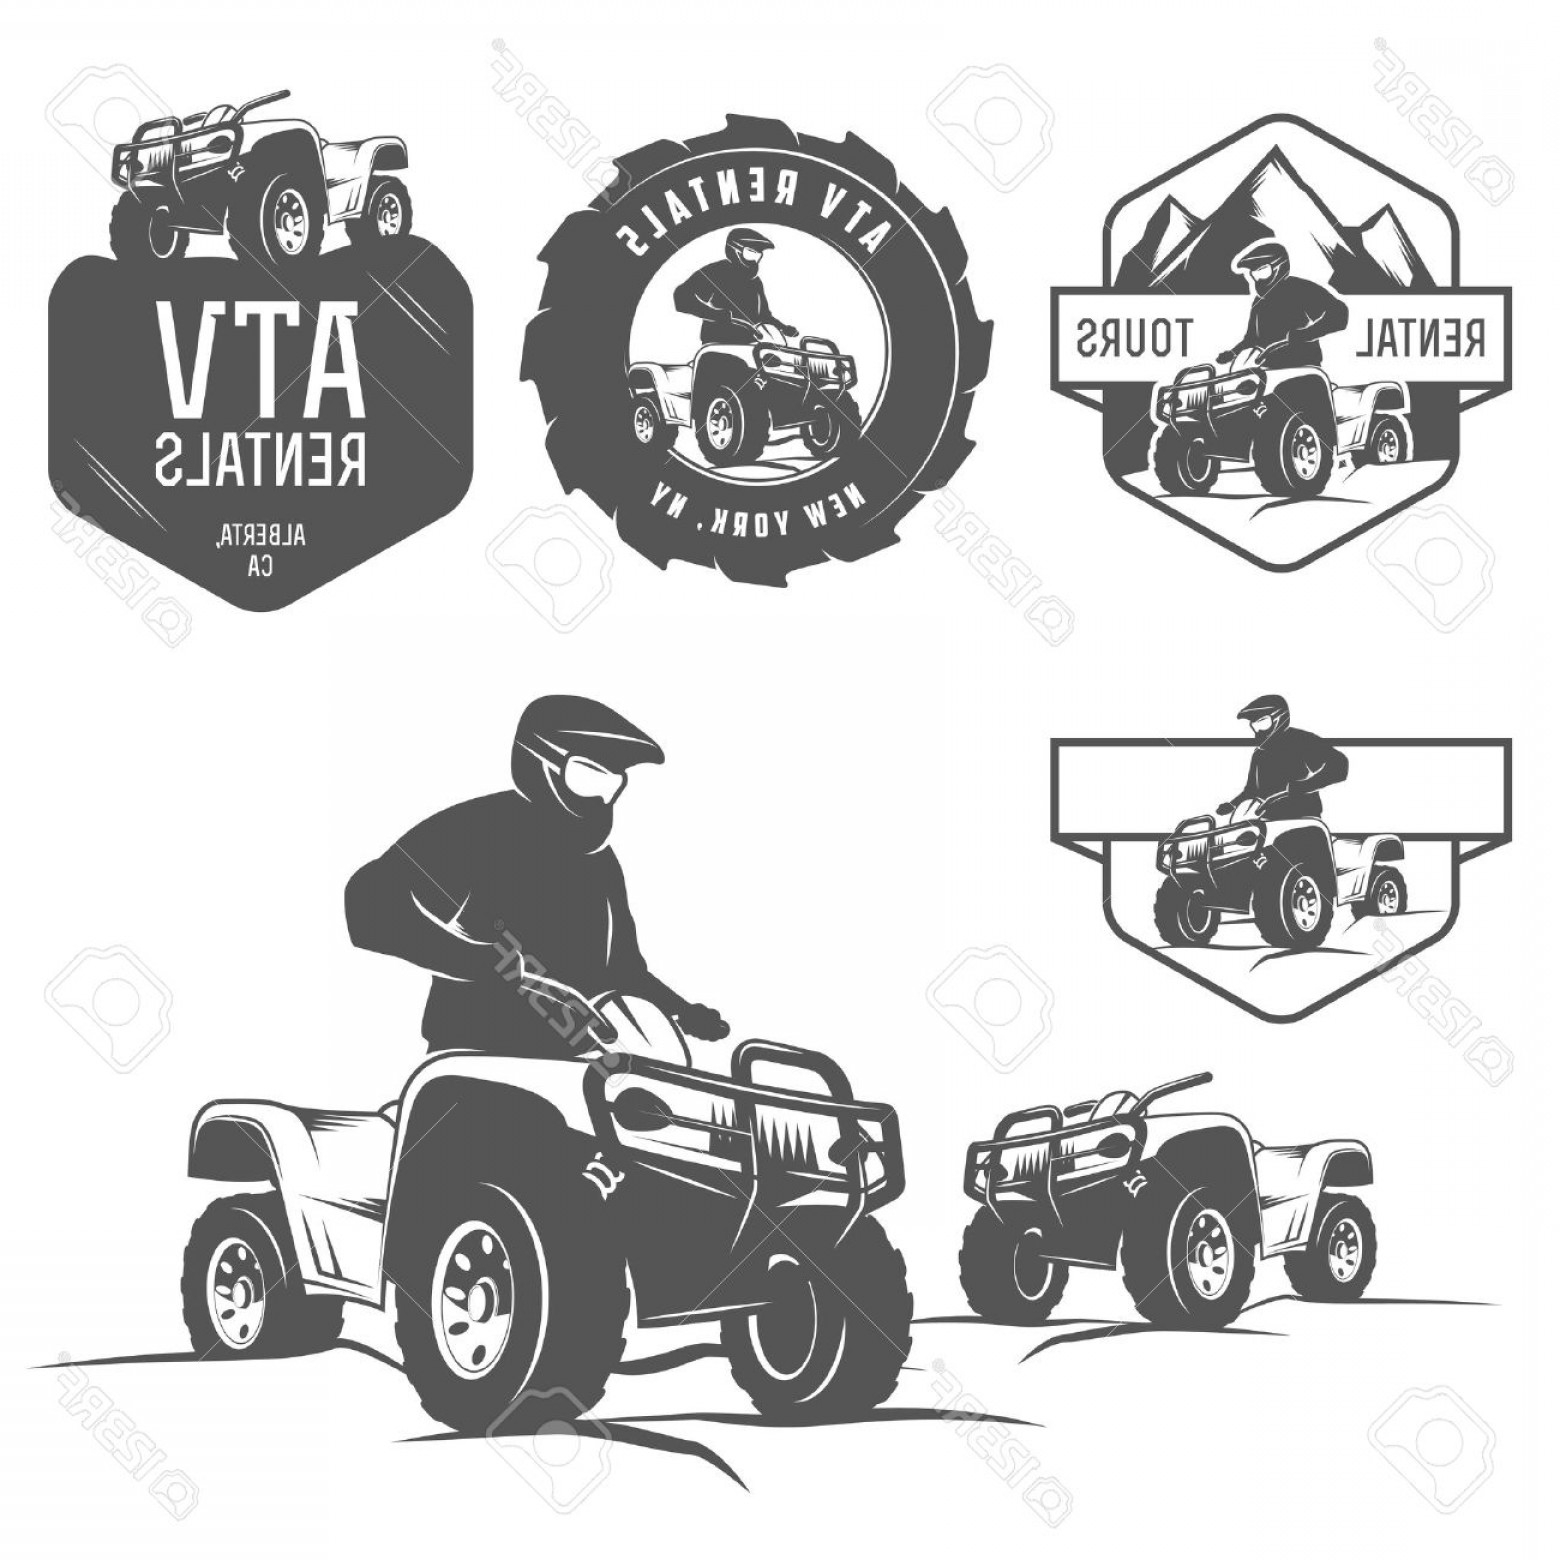 ATV Vector Clip Art: Photoset Of Atv Labels Badges And Design Elements